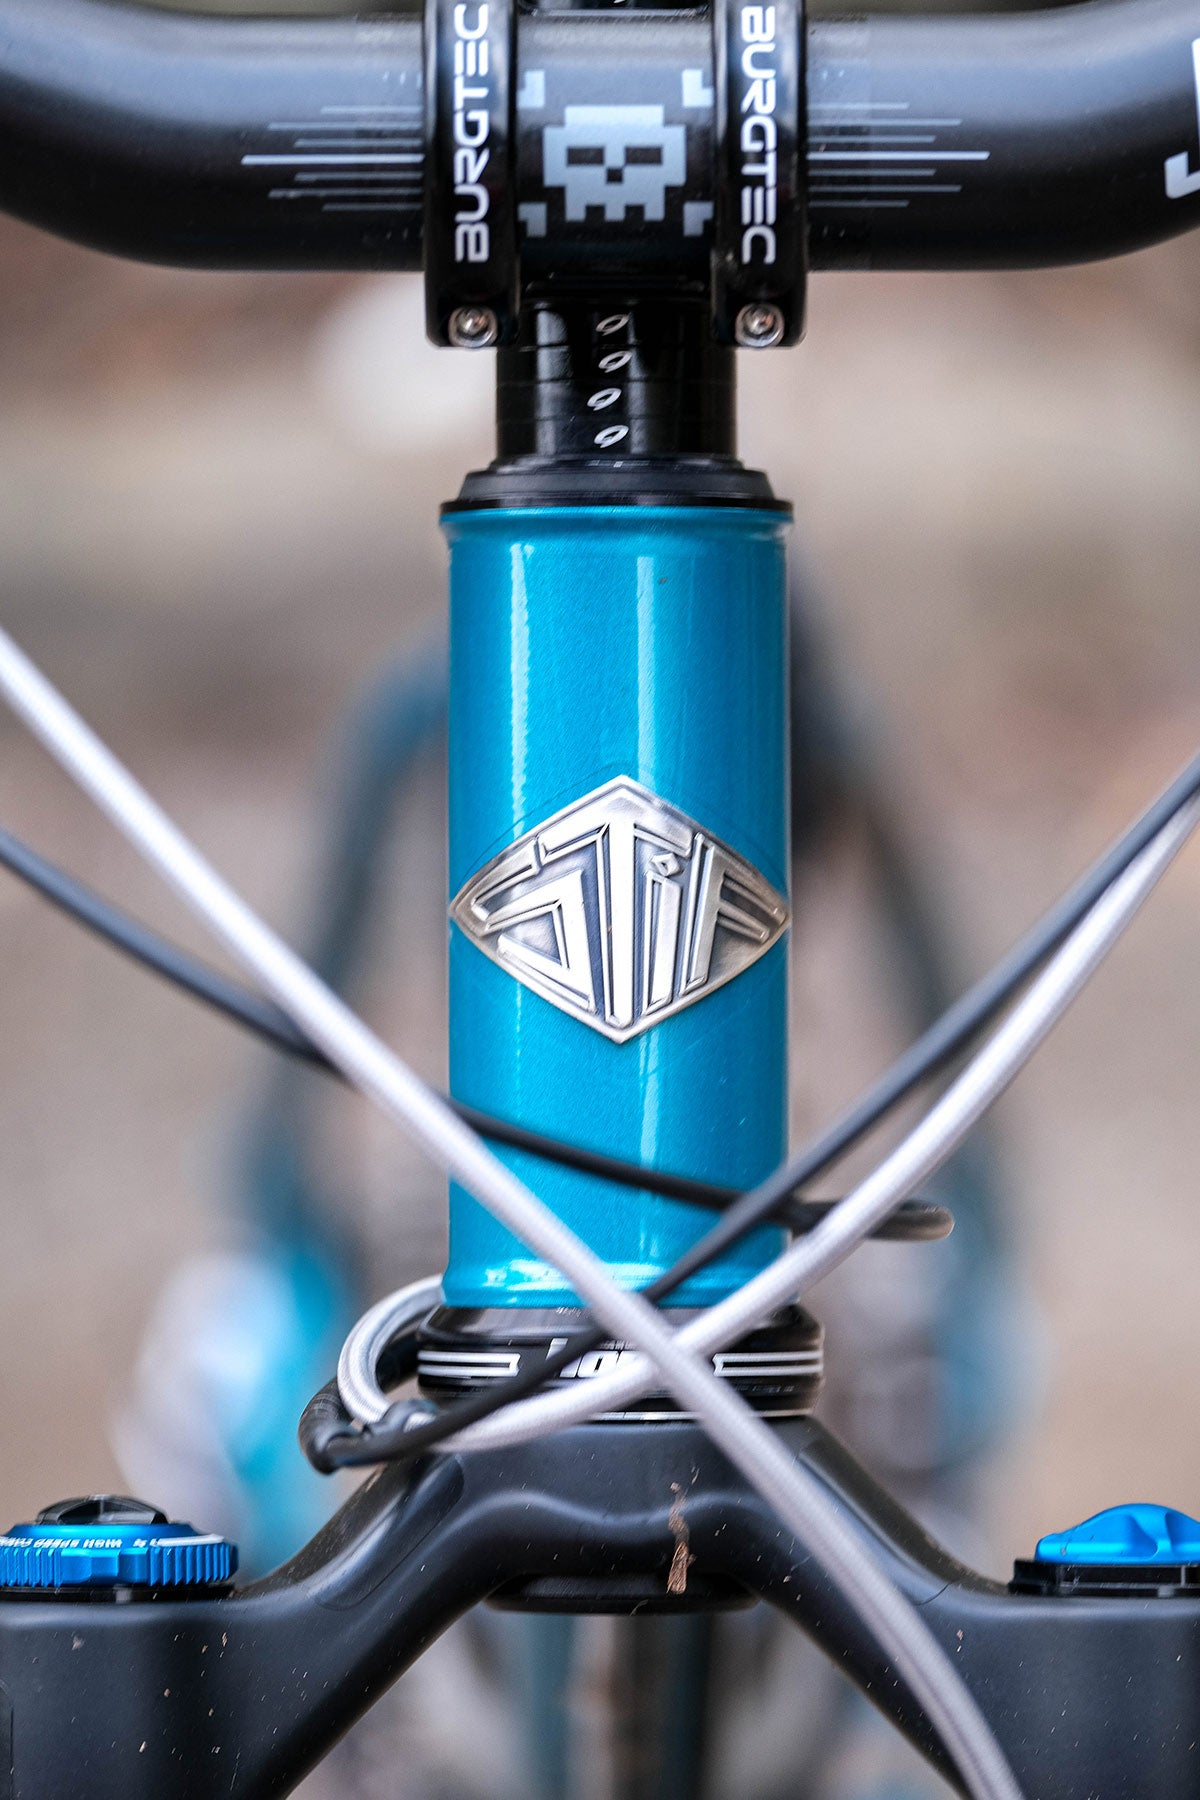 Stif headtube badge